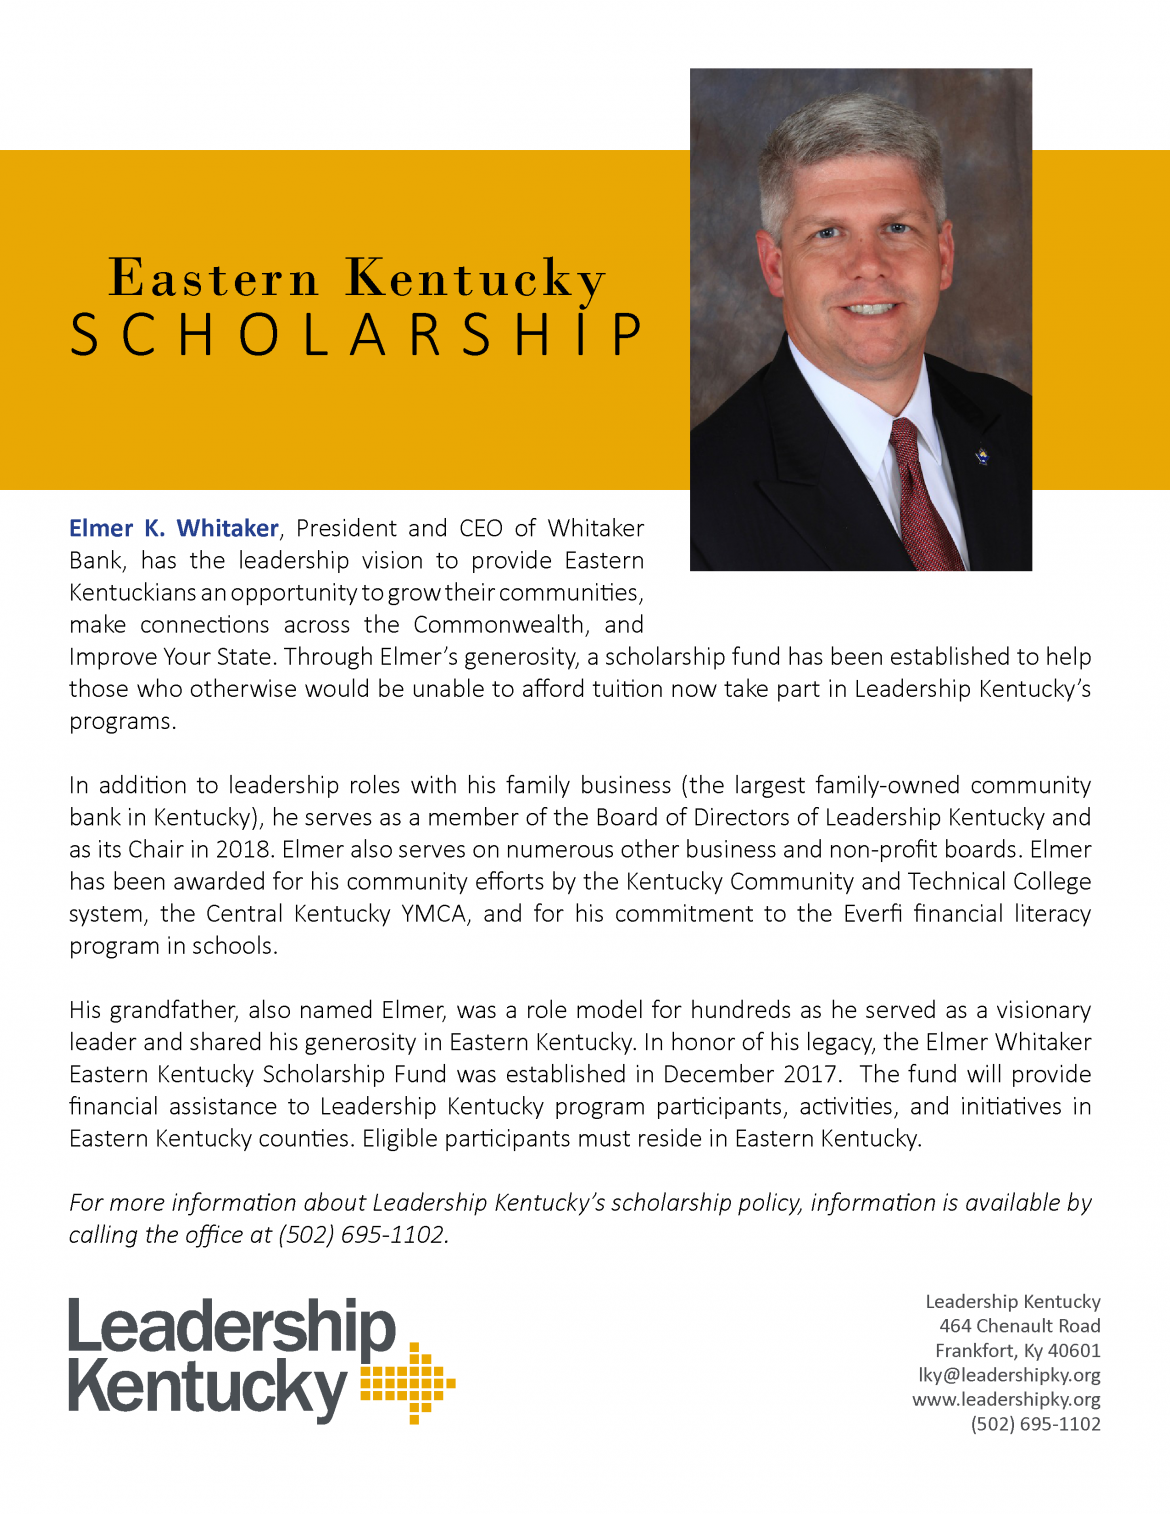 Eastern Kentucky Scholarship